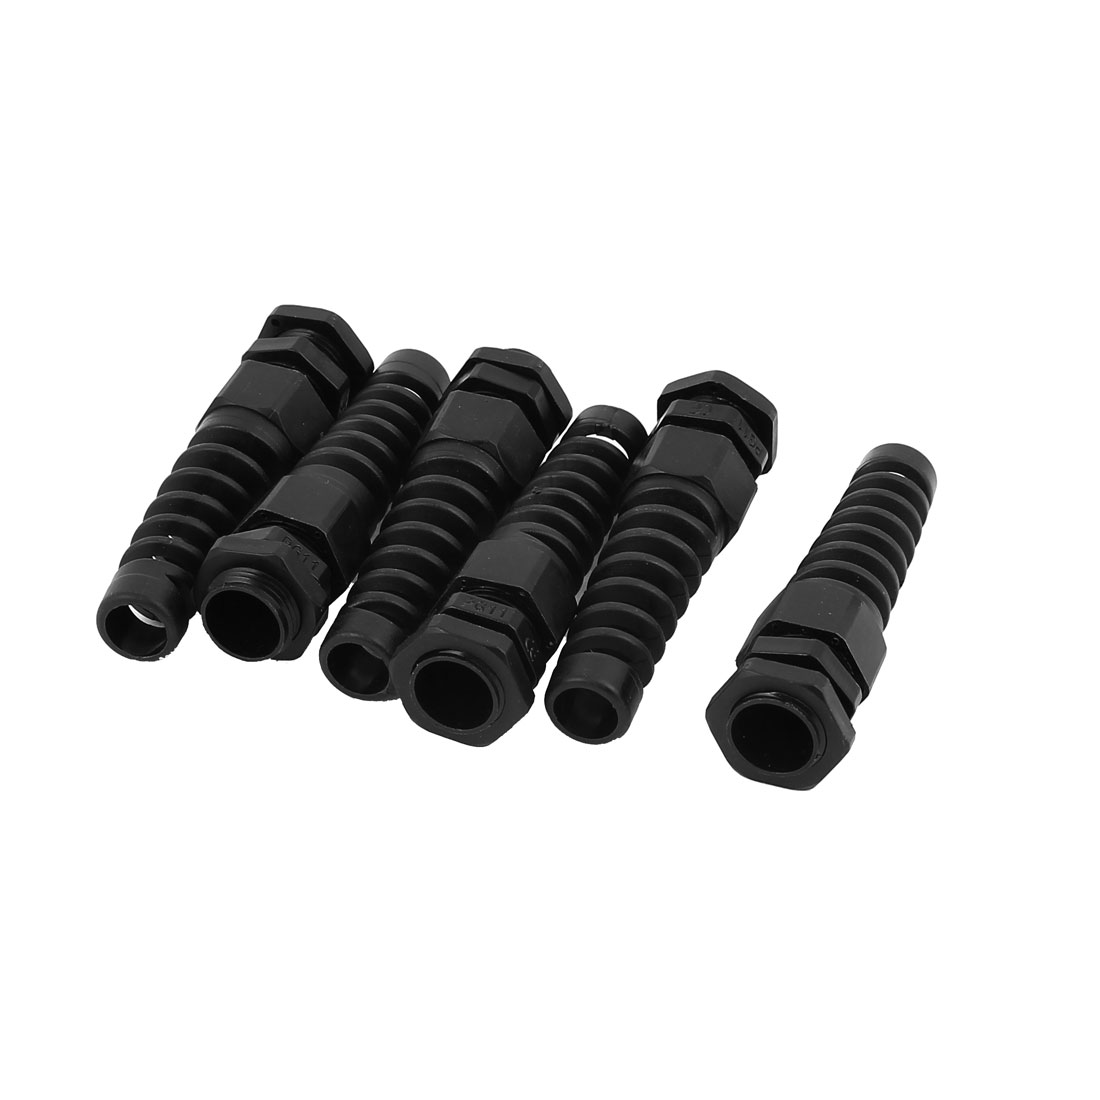 PG11 18mm Male Thread Dia Water Resistant Cables Fixing Gland Connector Fastener Black 6pcs